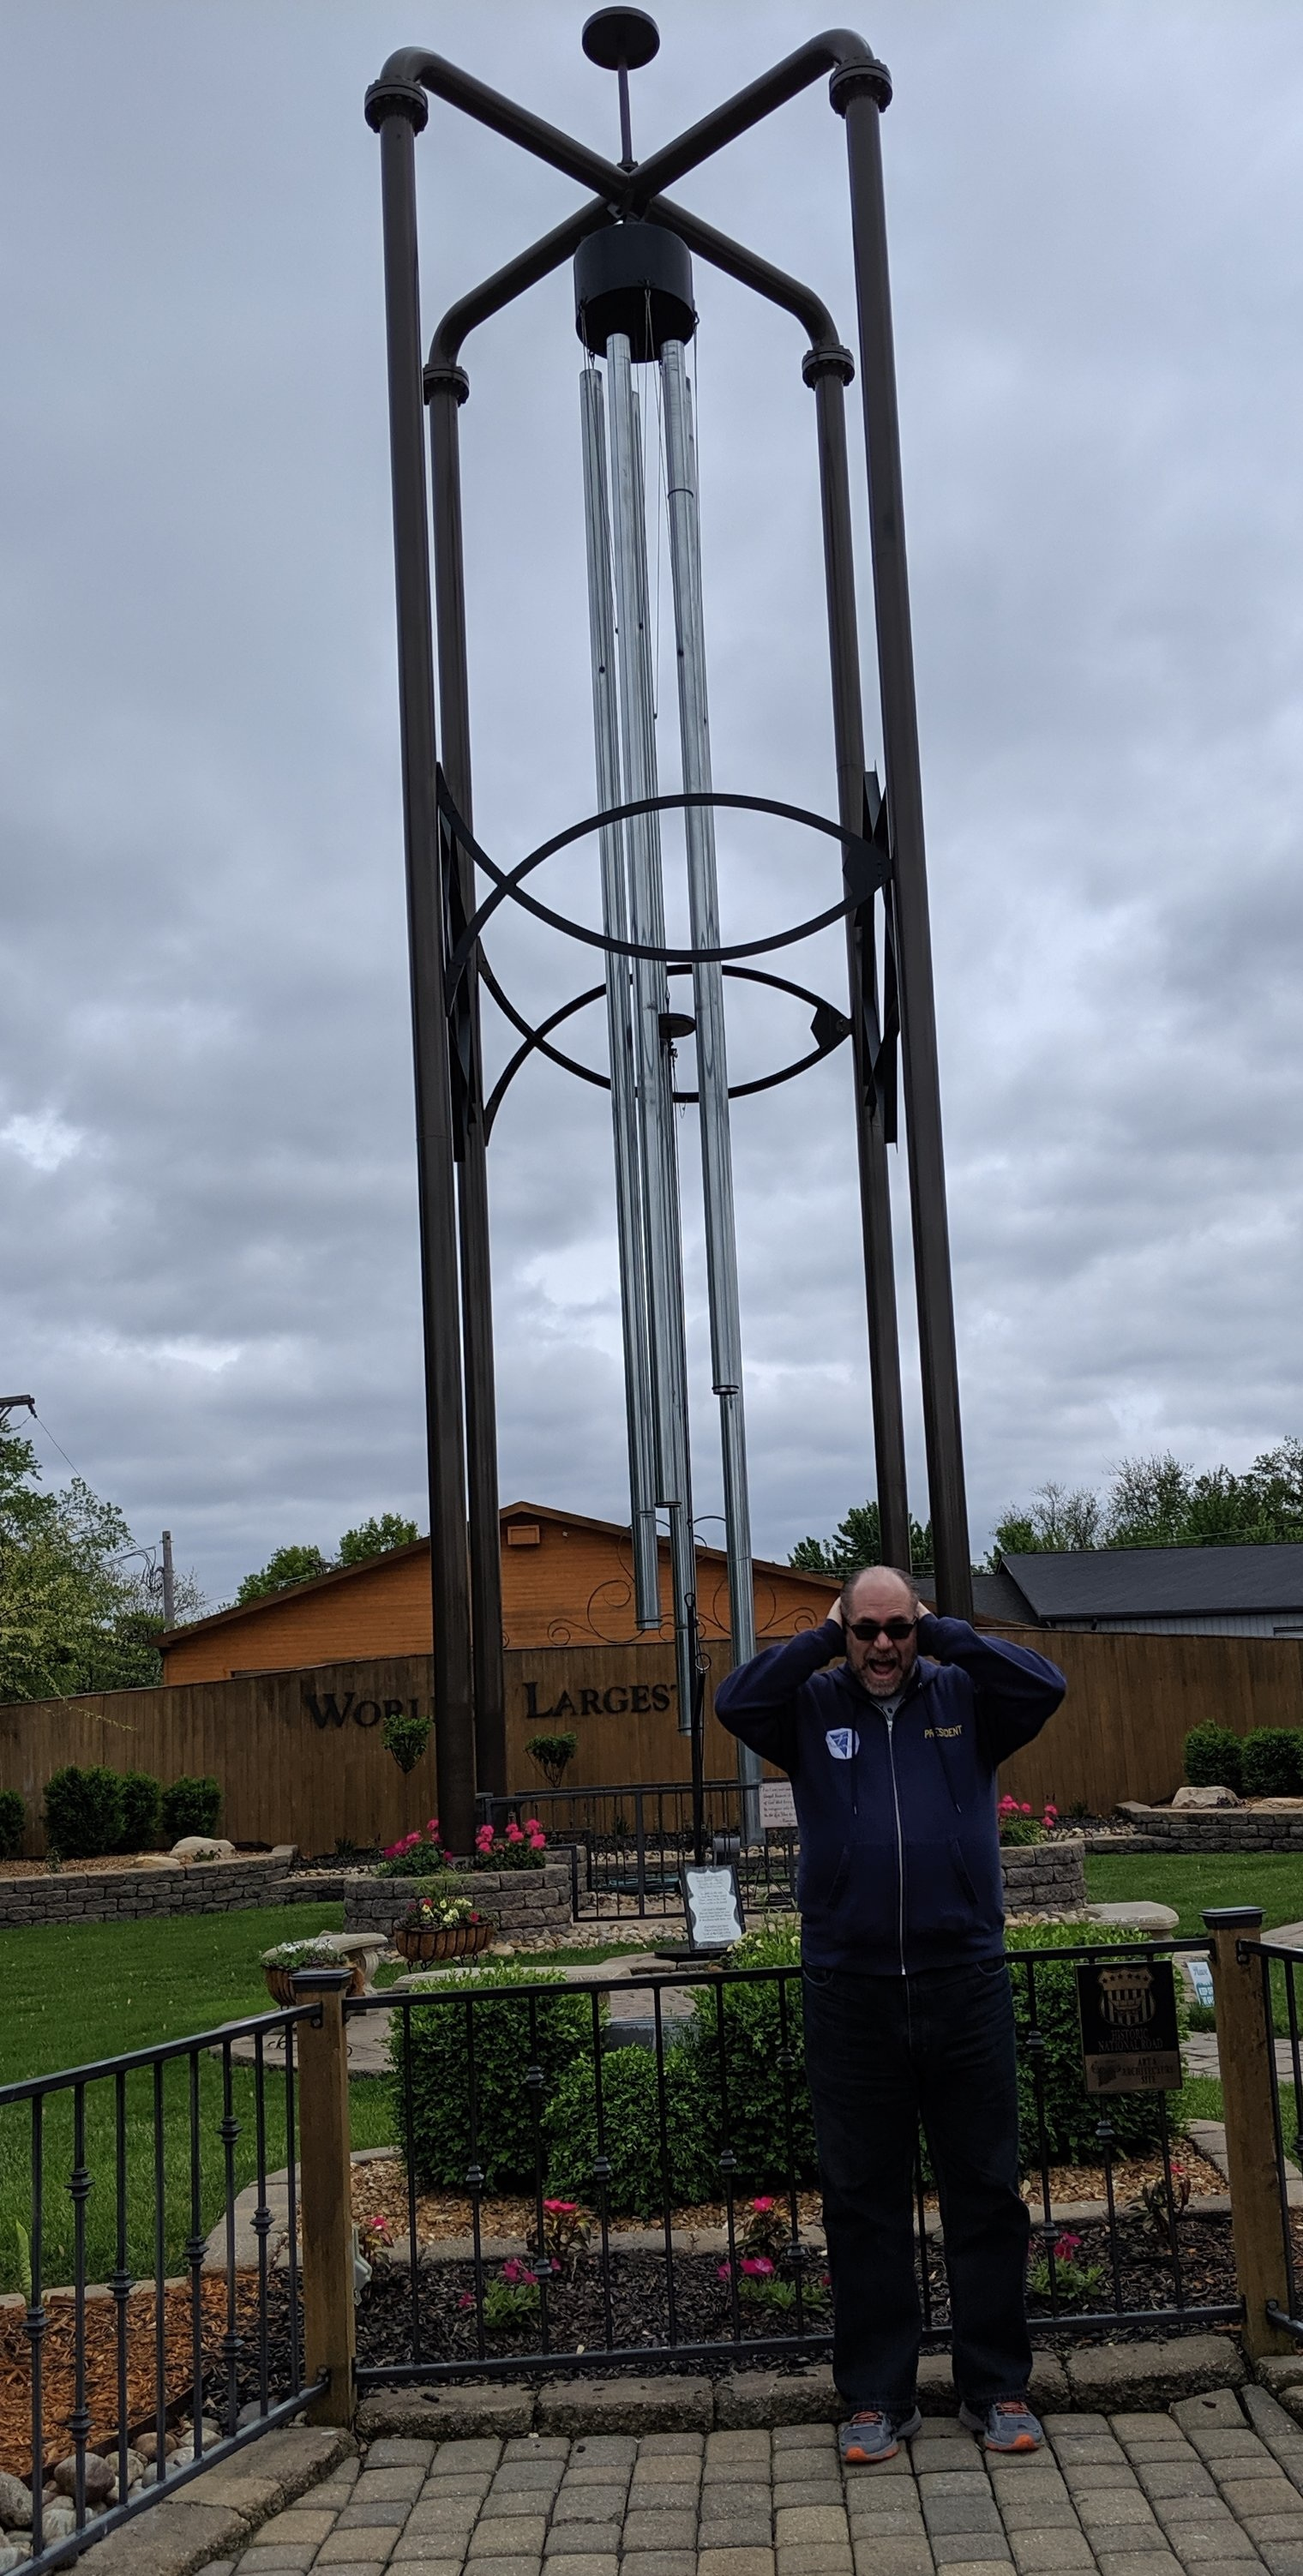 The world's largest FUNCTIONING wind chime.